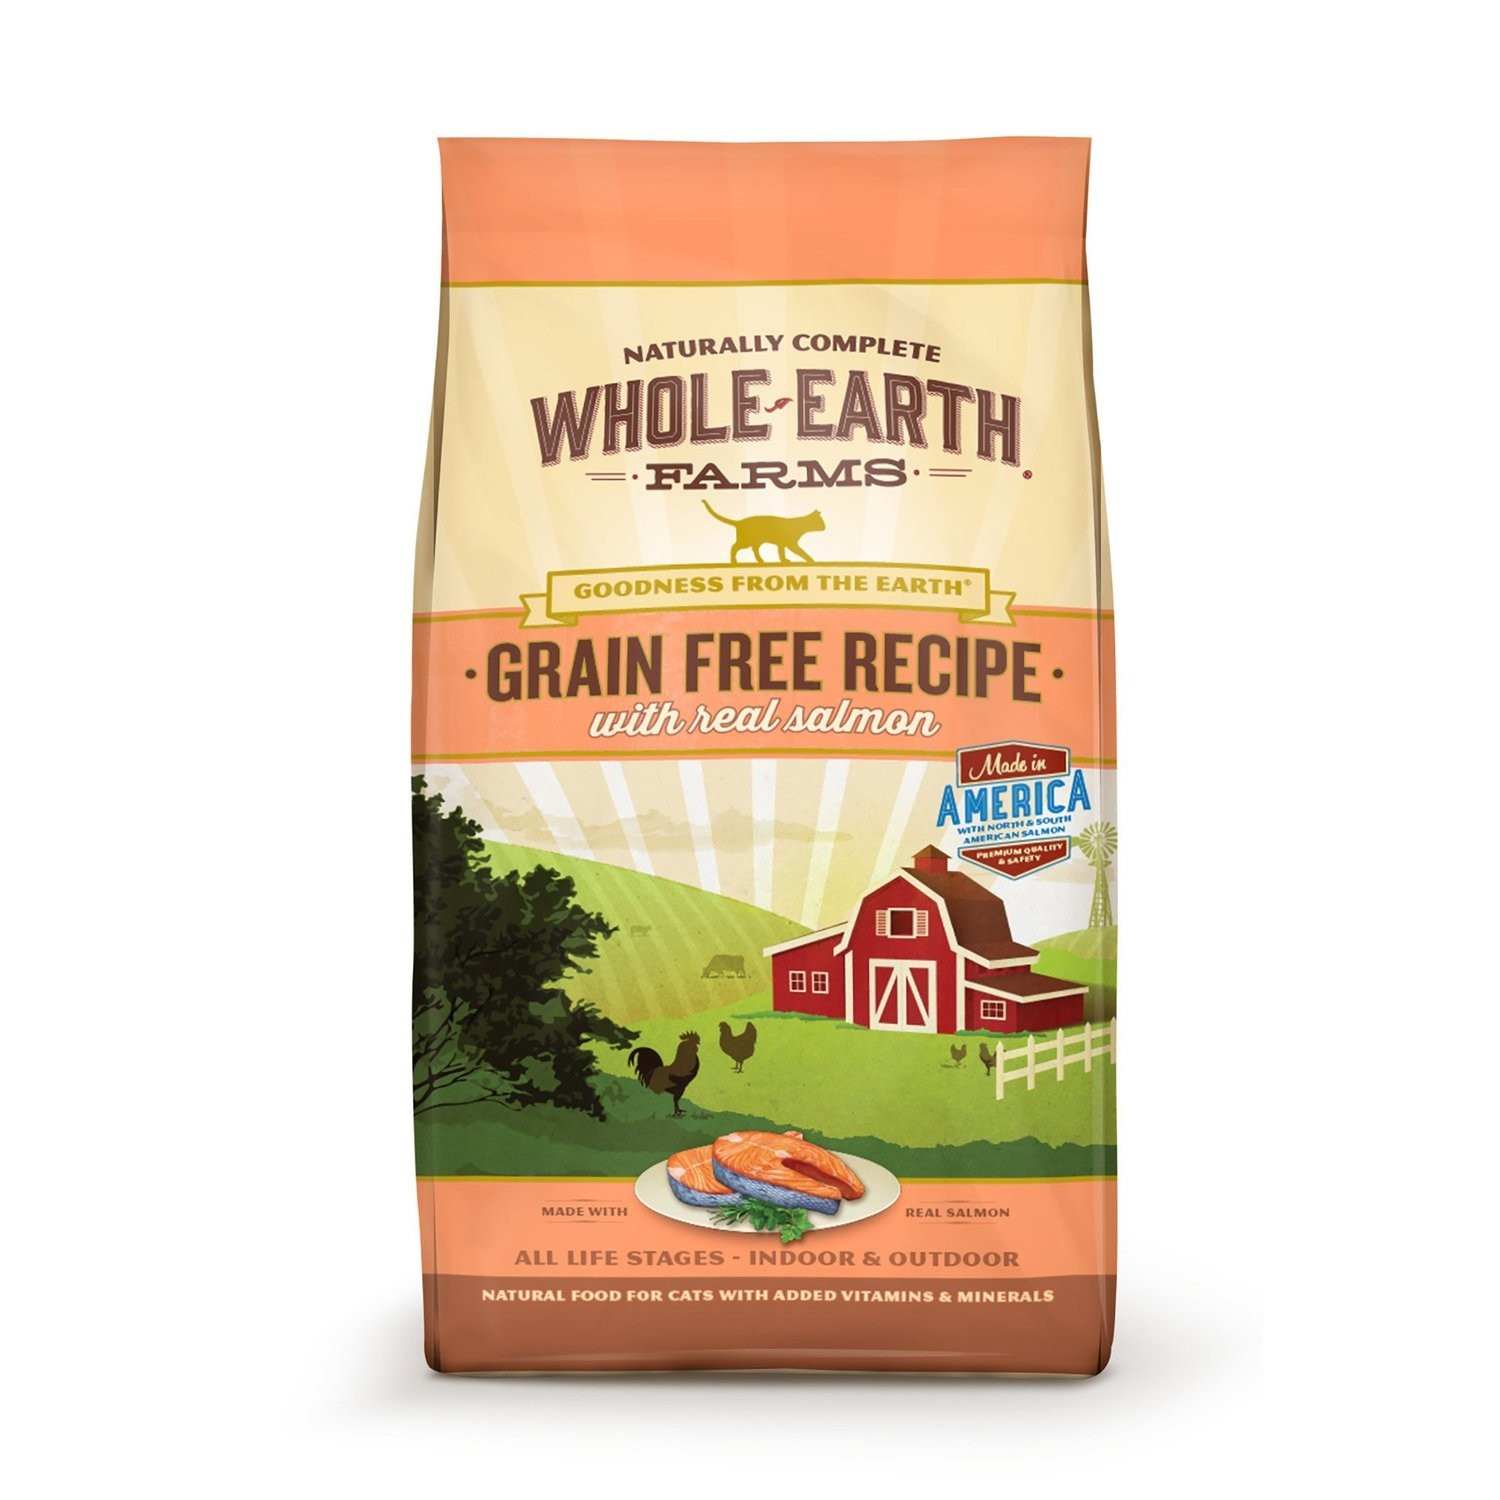 Whole Earth Farms Grain Free Real Salmon Cat Food, 2.5 lbs. (7/20) (A.I1)